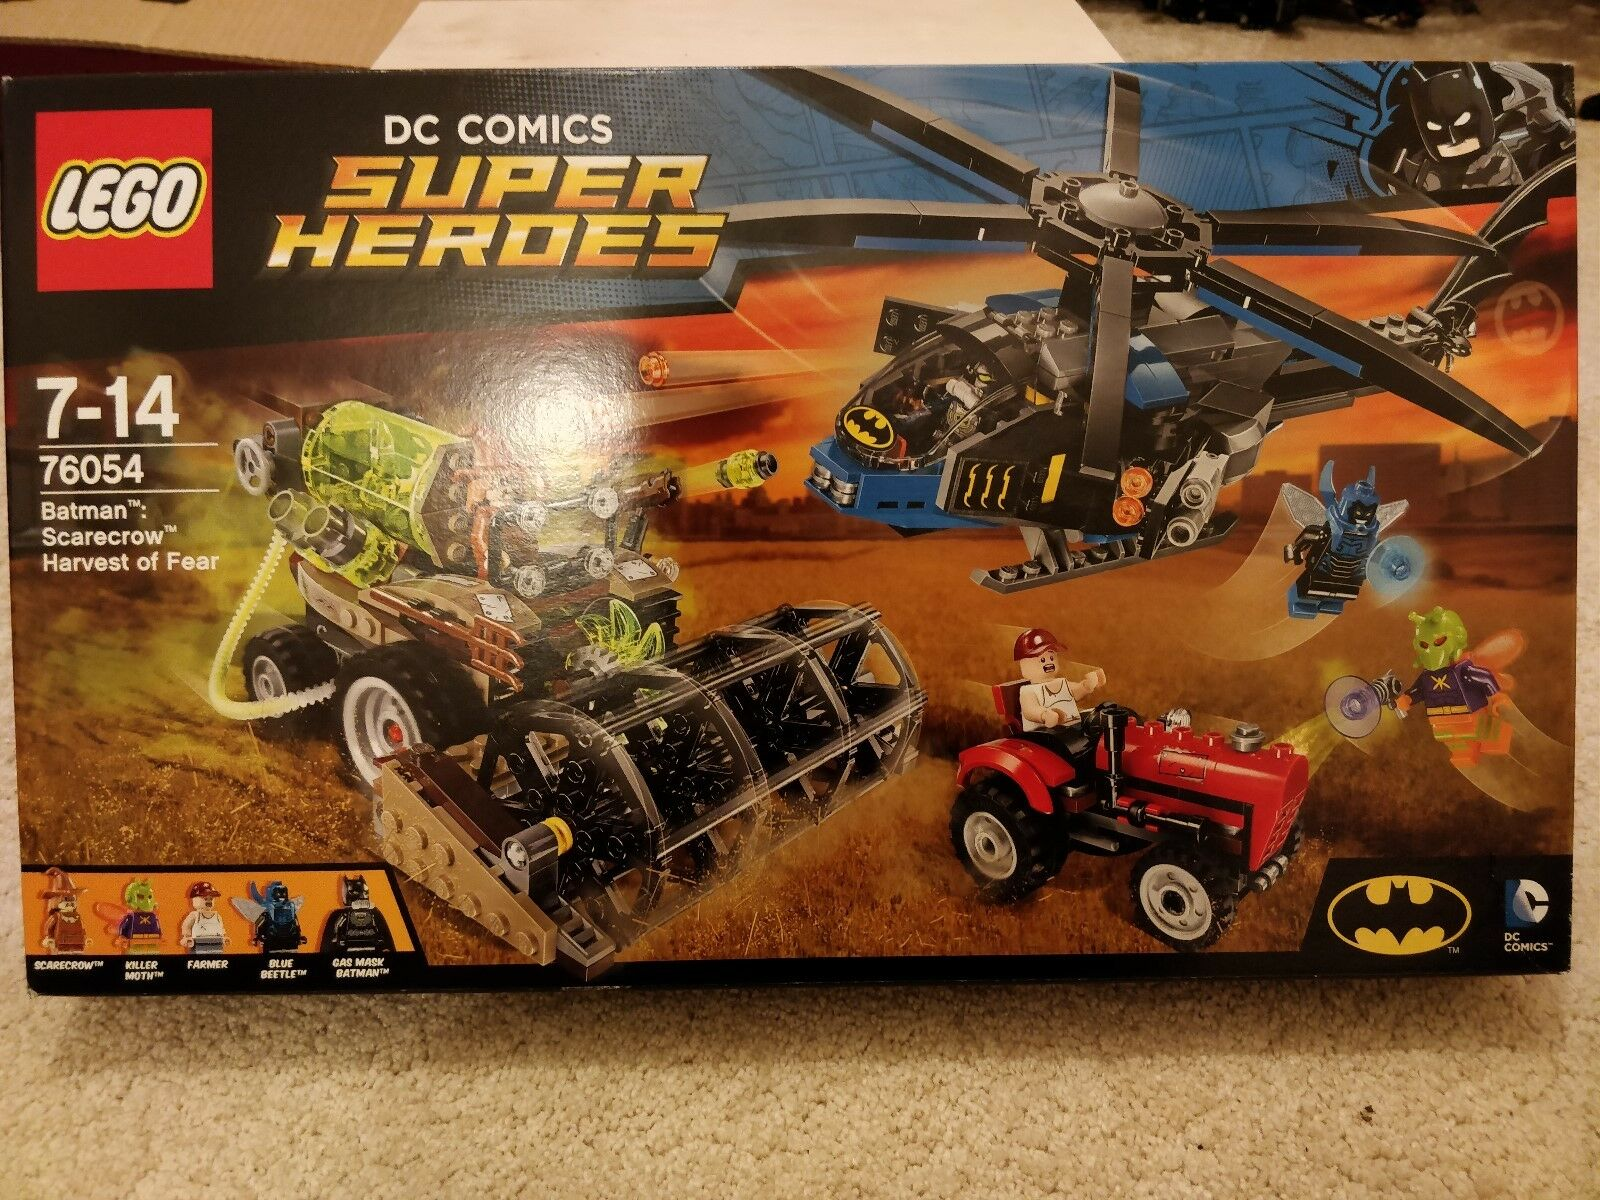 Lego DC Super Heroes 76054 Scarecrow Harvest of Fear NEW SEALED BNISB